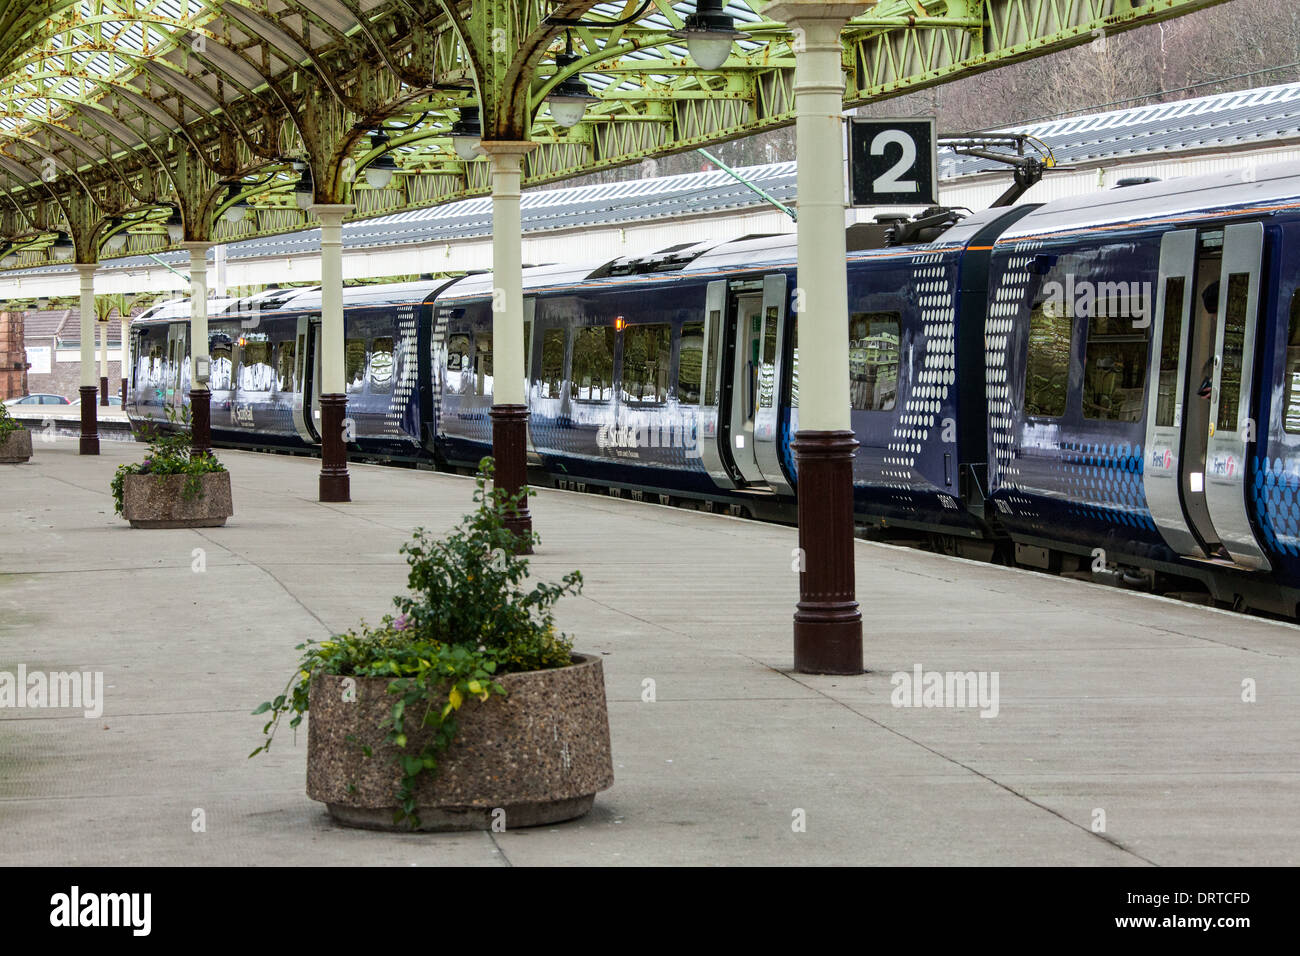 Scotrail Class 380 010 Electric Multiple Unit, Wemyss Bay Rail Station, Inverclyde, Scotland - Stock Image